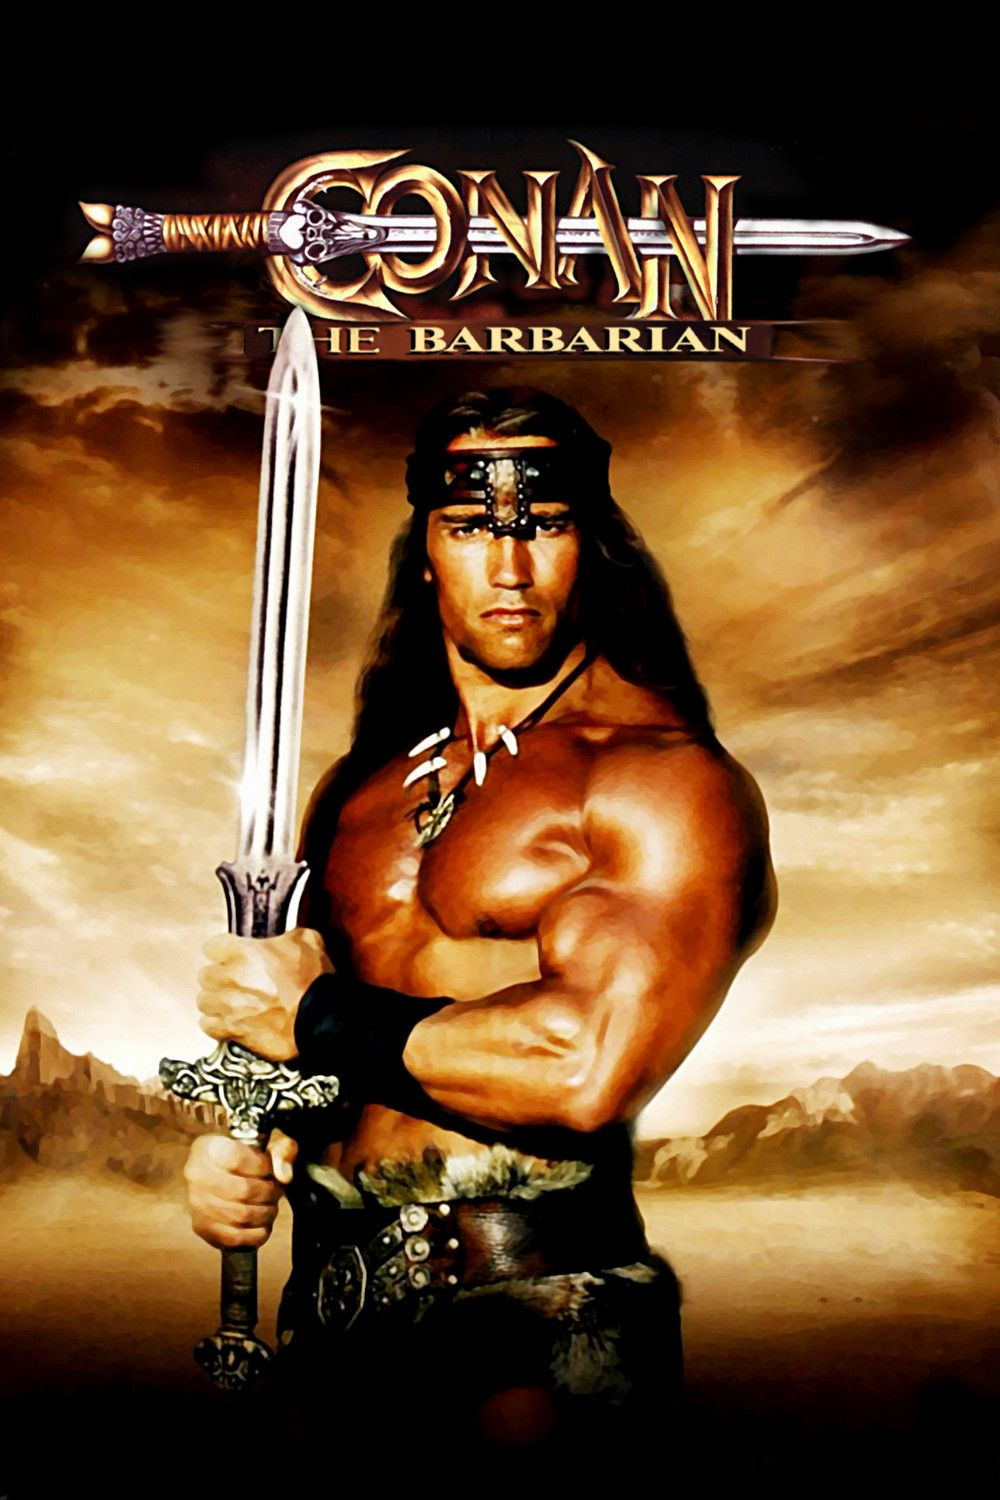 Conan The Barbarian The Man I Want To Be When I Grow Up Or The Man I Am On Role Play Conan The Barbarian Movie Conan The Barbarian 1982 Conan The Barbarian